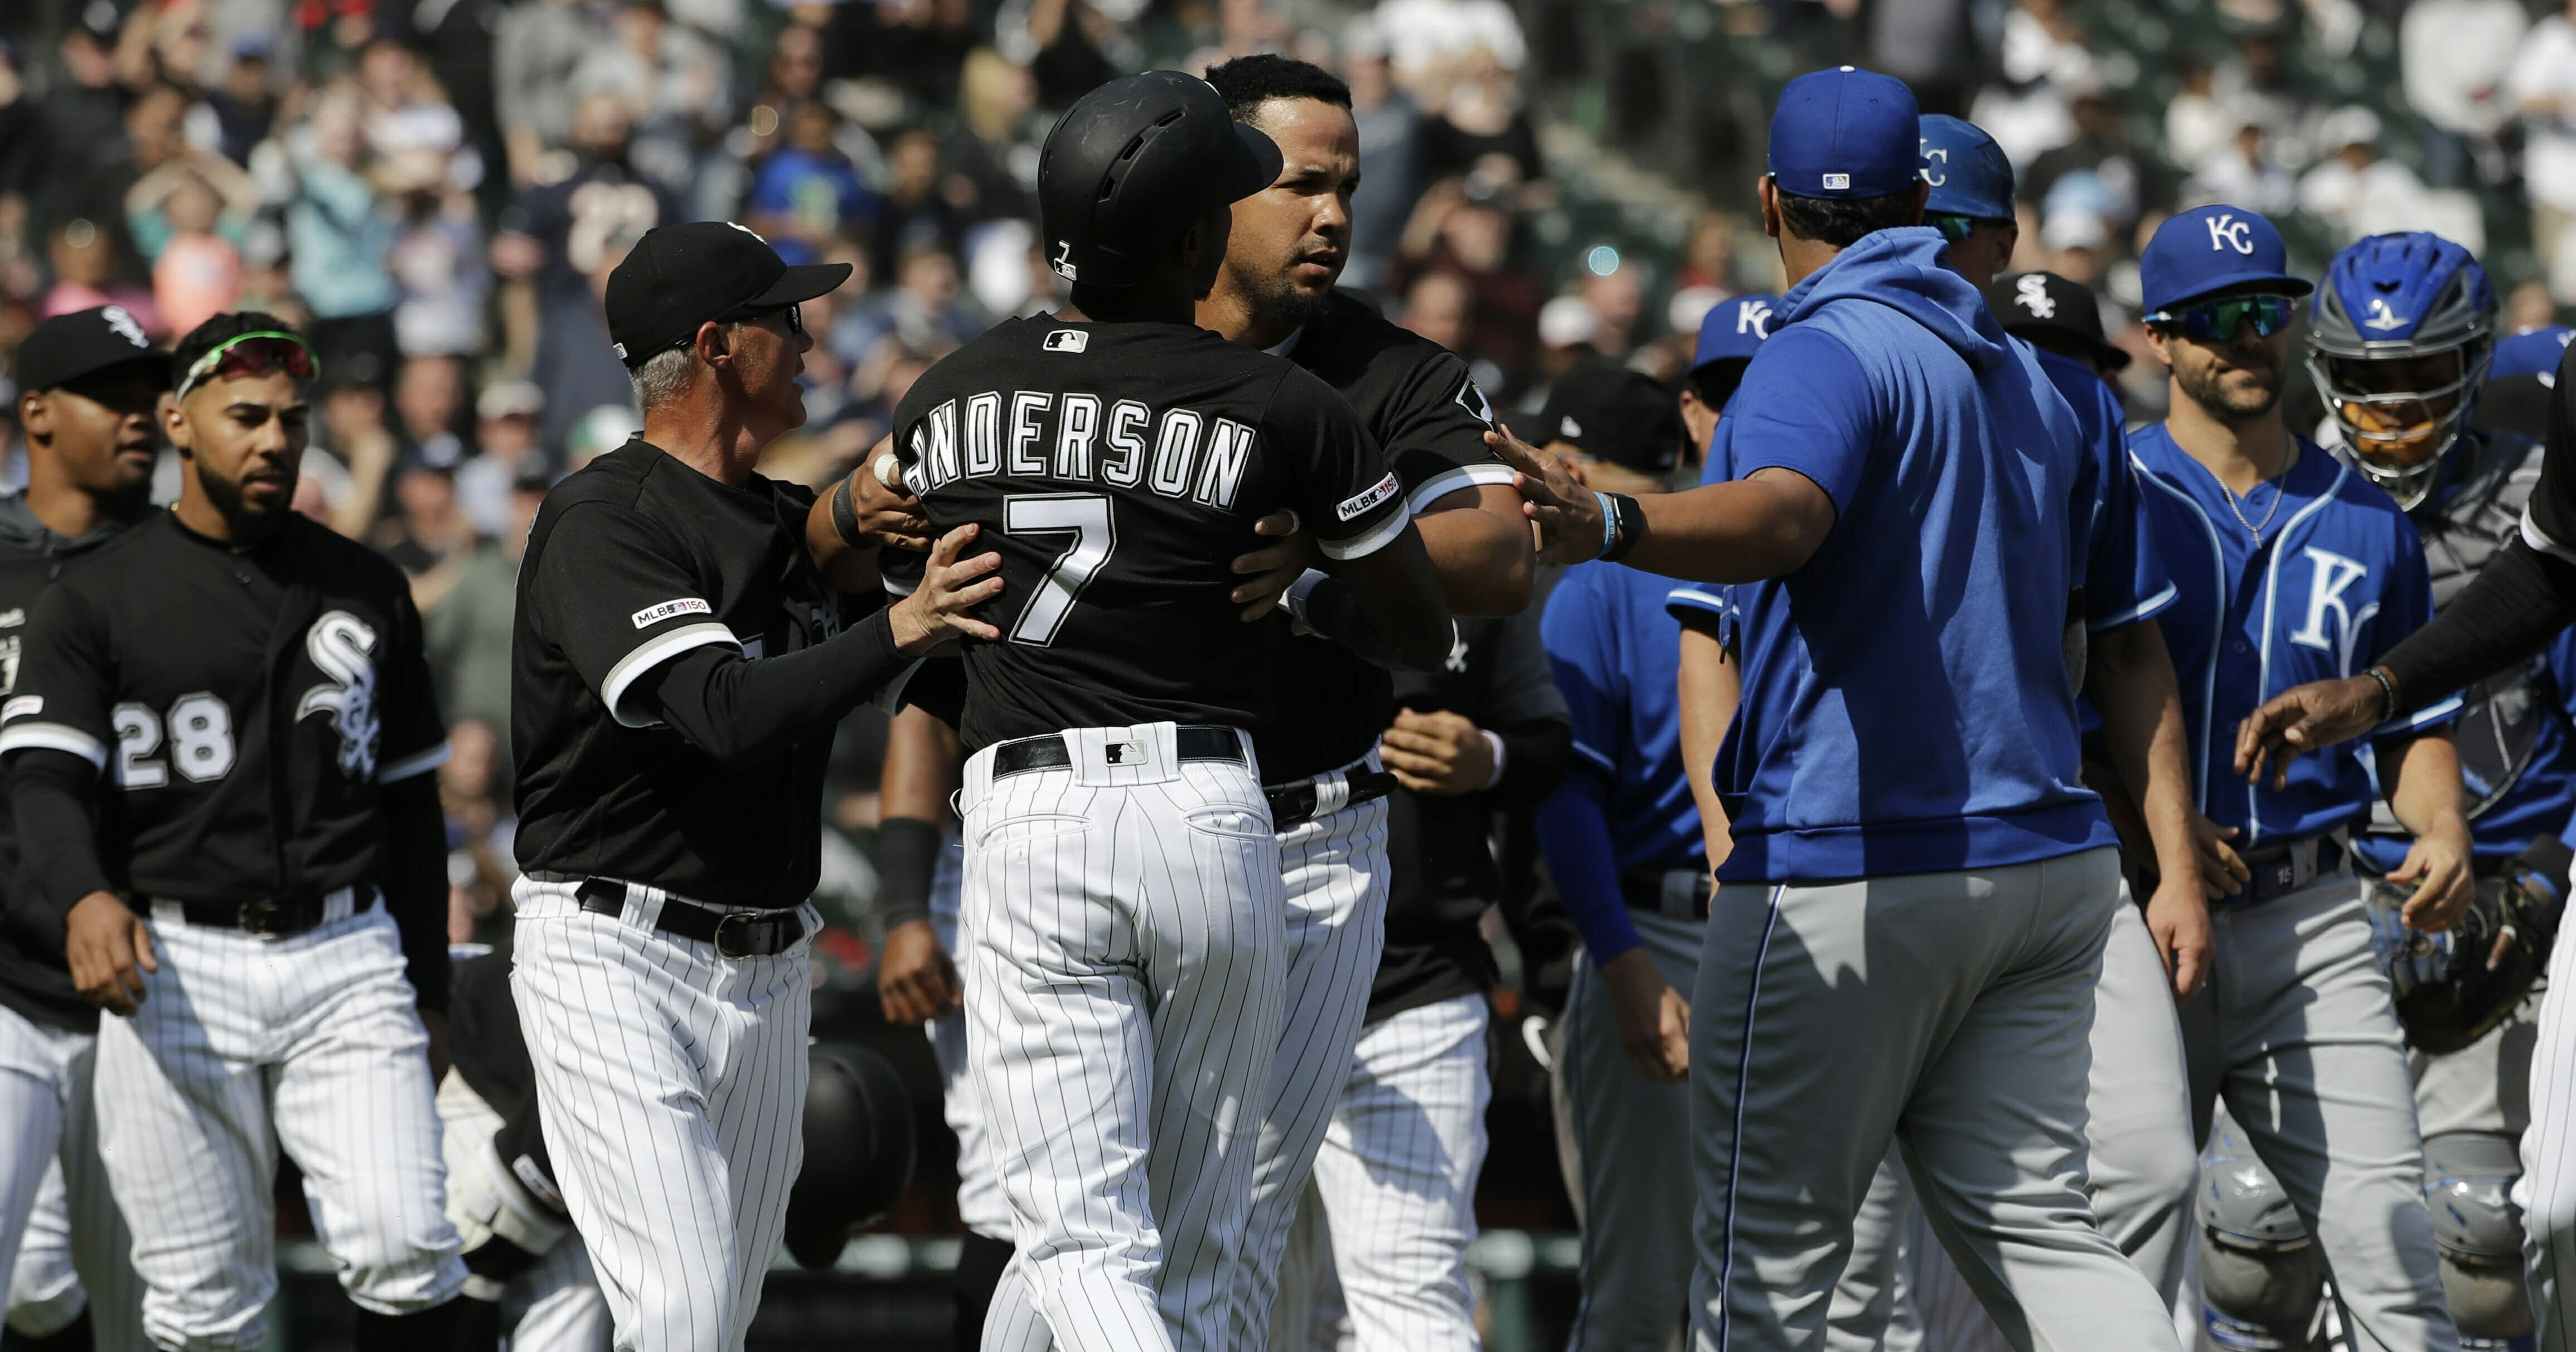 Chicago White Sox's Tim Anderson is restrained by Jose Abreu after he was hit by a pitch from the Kansas City Royals, as benches cleared during the sixth inning of a baseball game in Chicago, Wednesday, April 17, 2019.